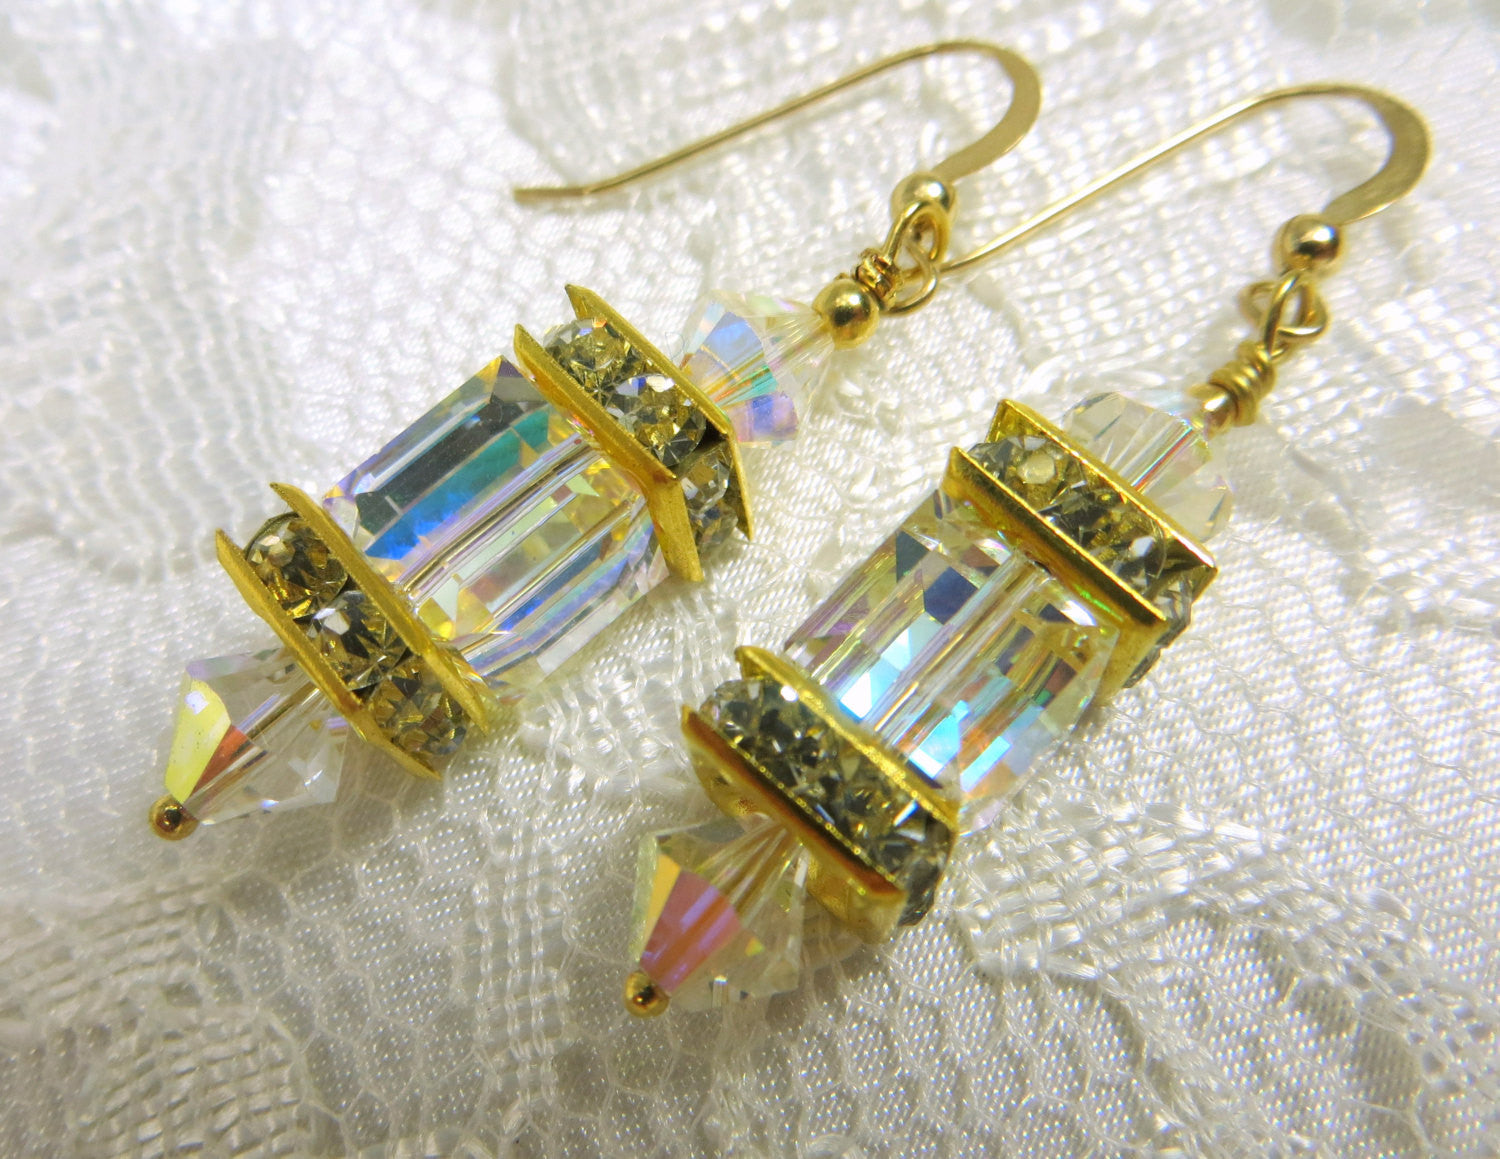 Swarovski Cube Earrings in Crystal AB on 22k Bali Gold Earring Wires - Odyssey Creations